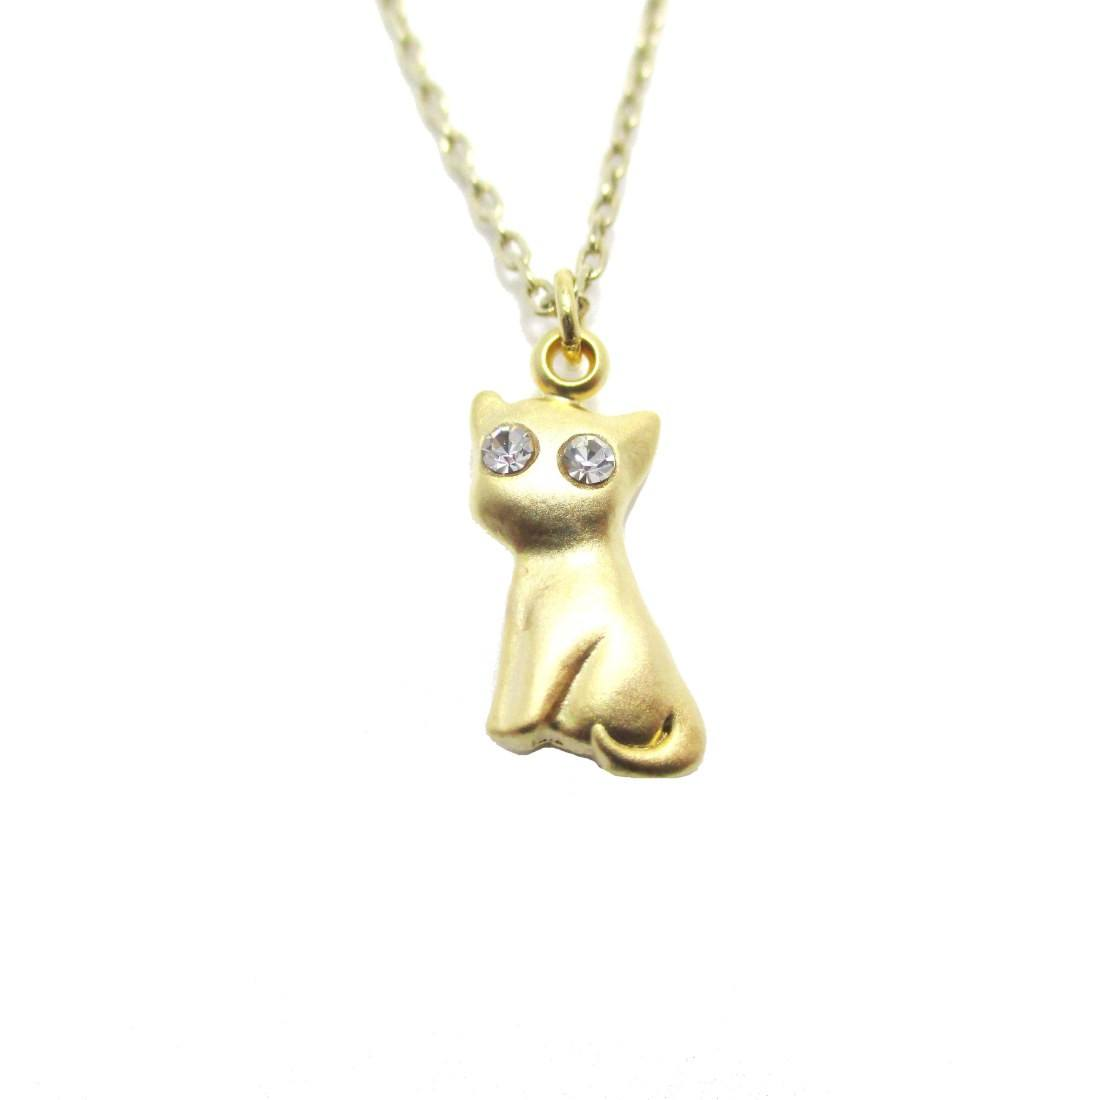 Kitty Cat Shaped Charm Necklace in Gold with Rhinestone